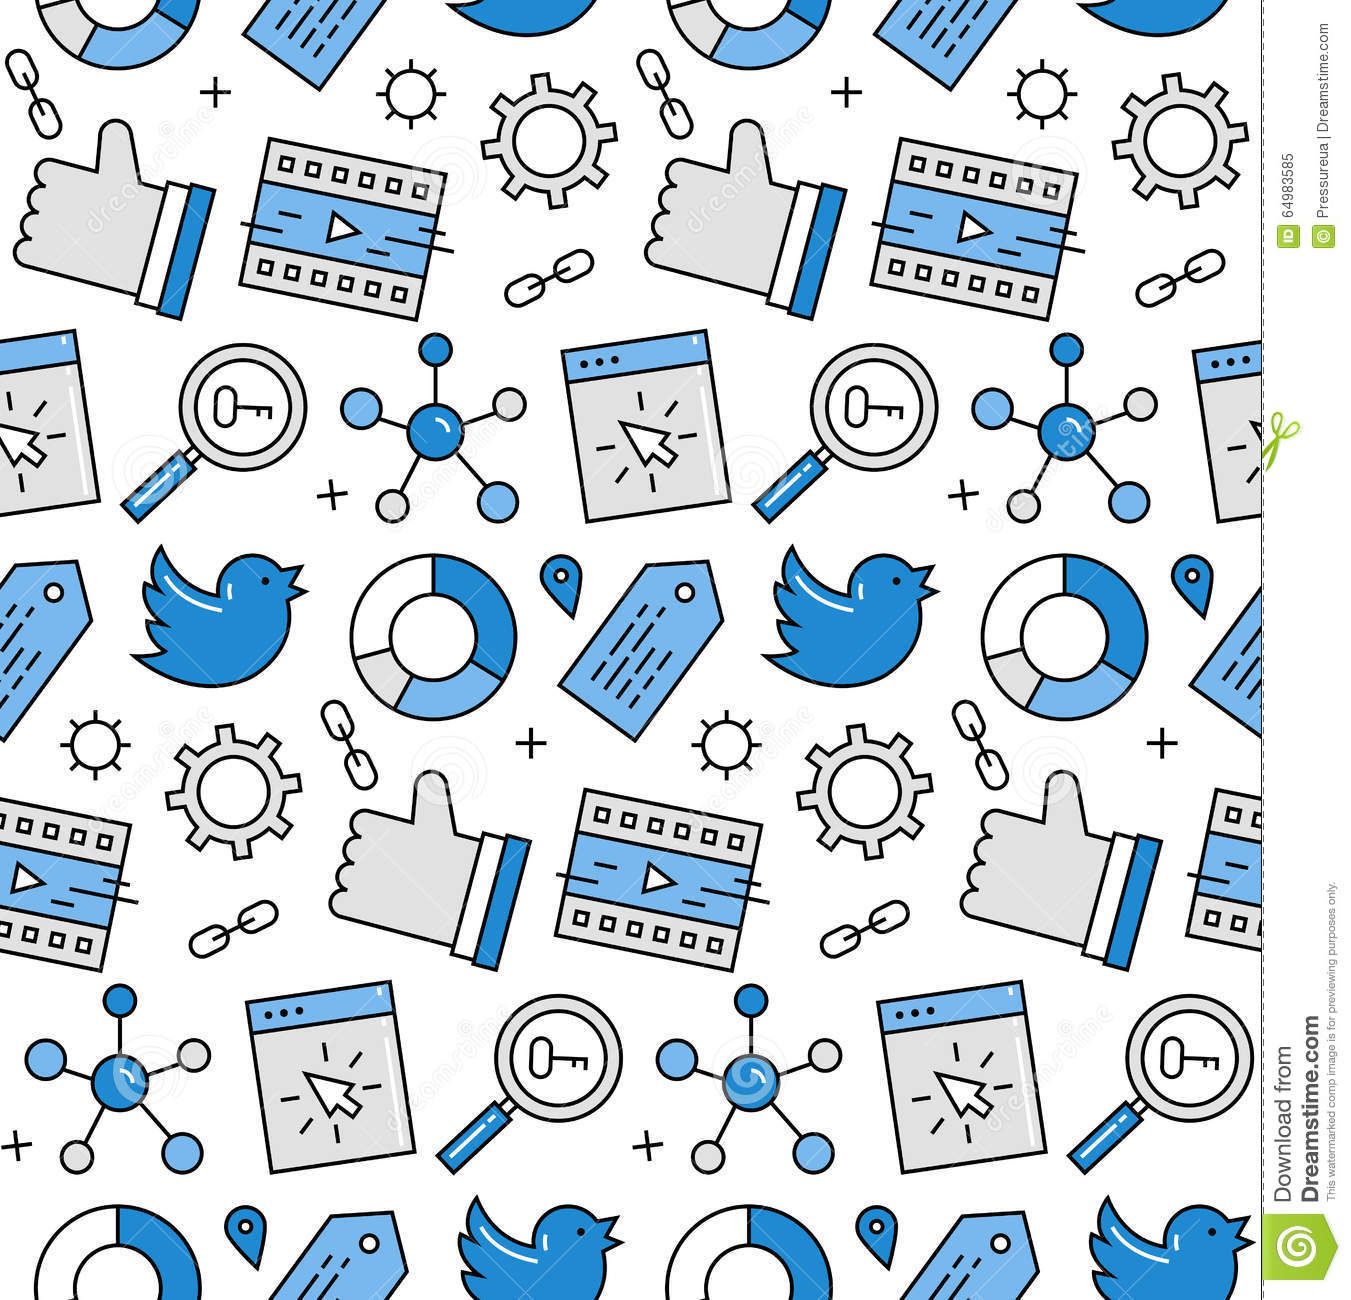 Modern line icons seamless pattern texture of social media networking ...